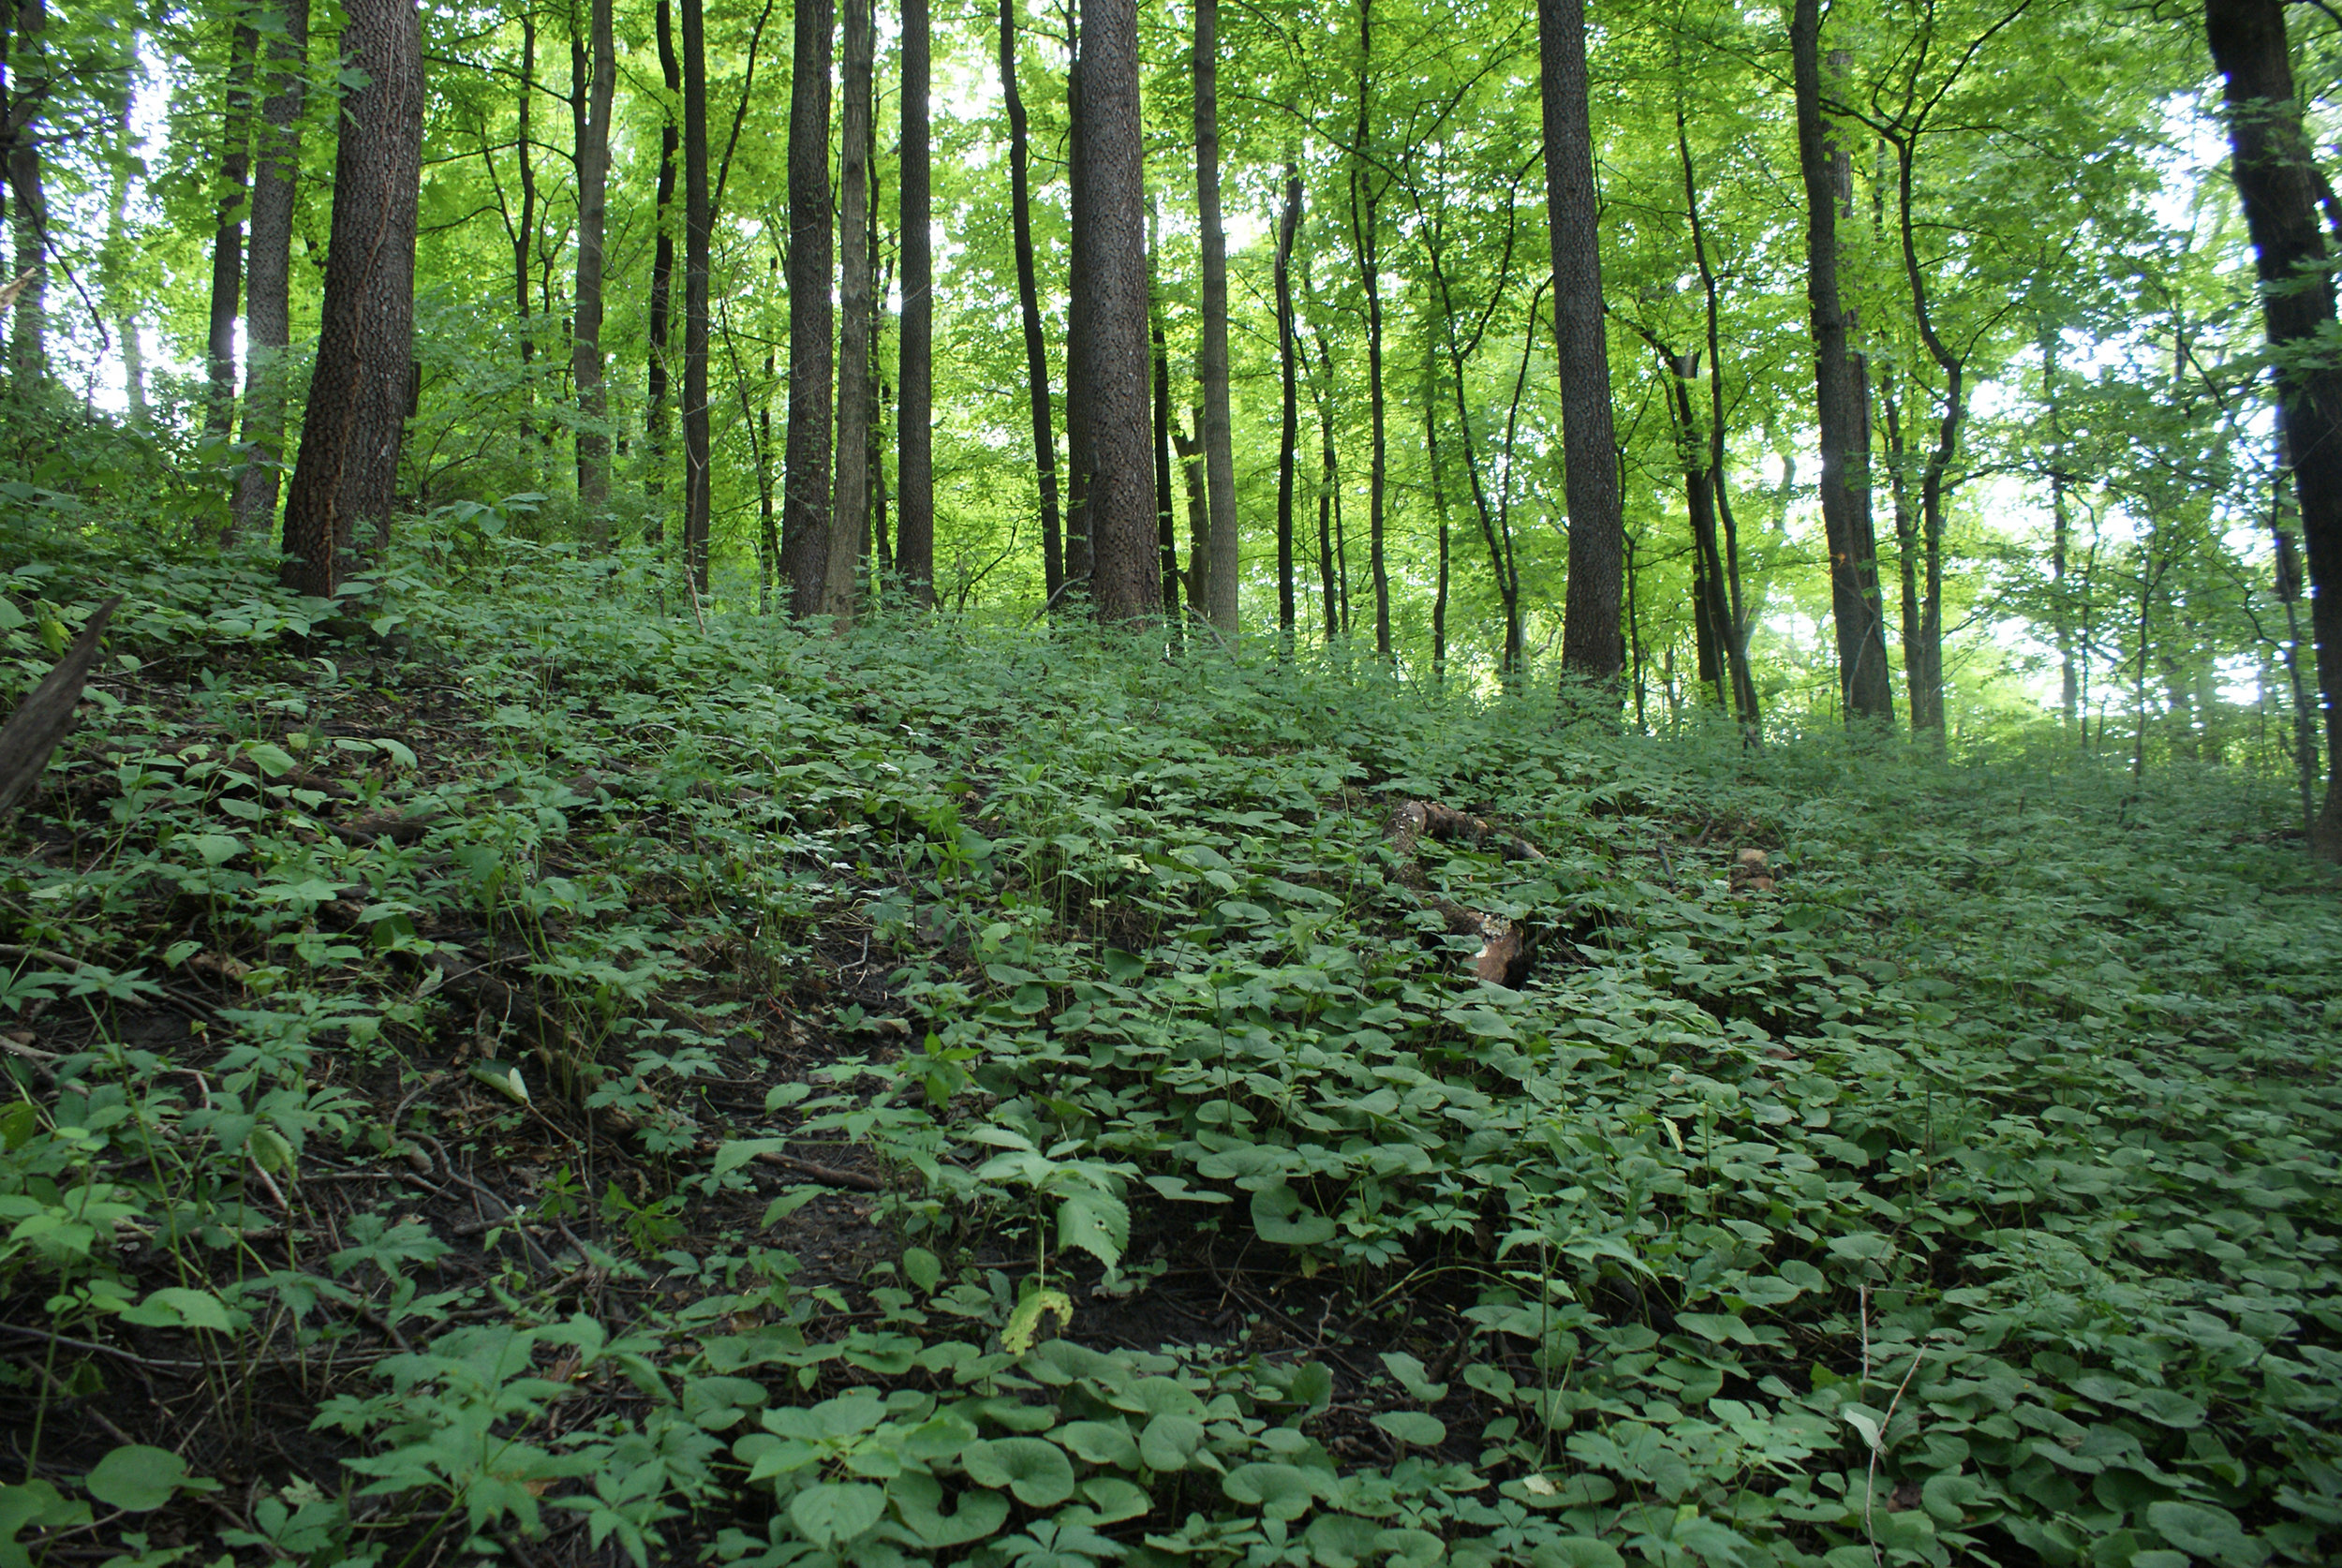 Woodland understory late Summer, St. Clair County Greenspace